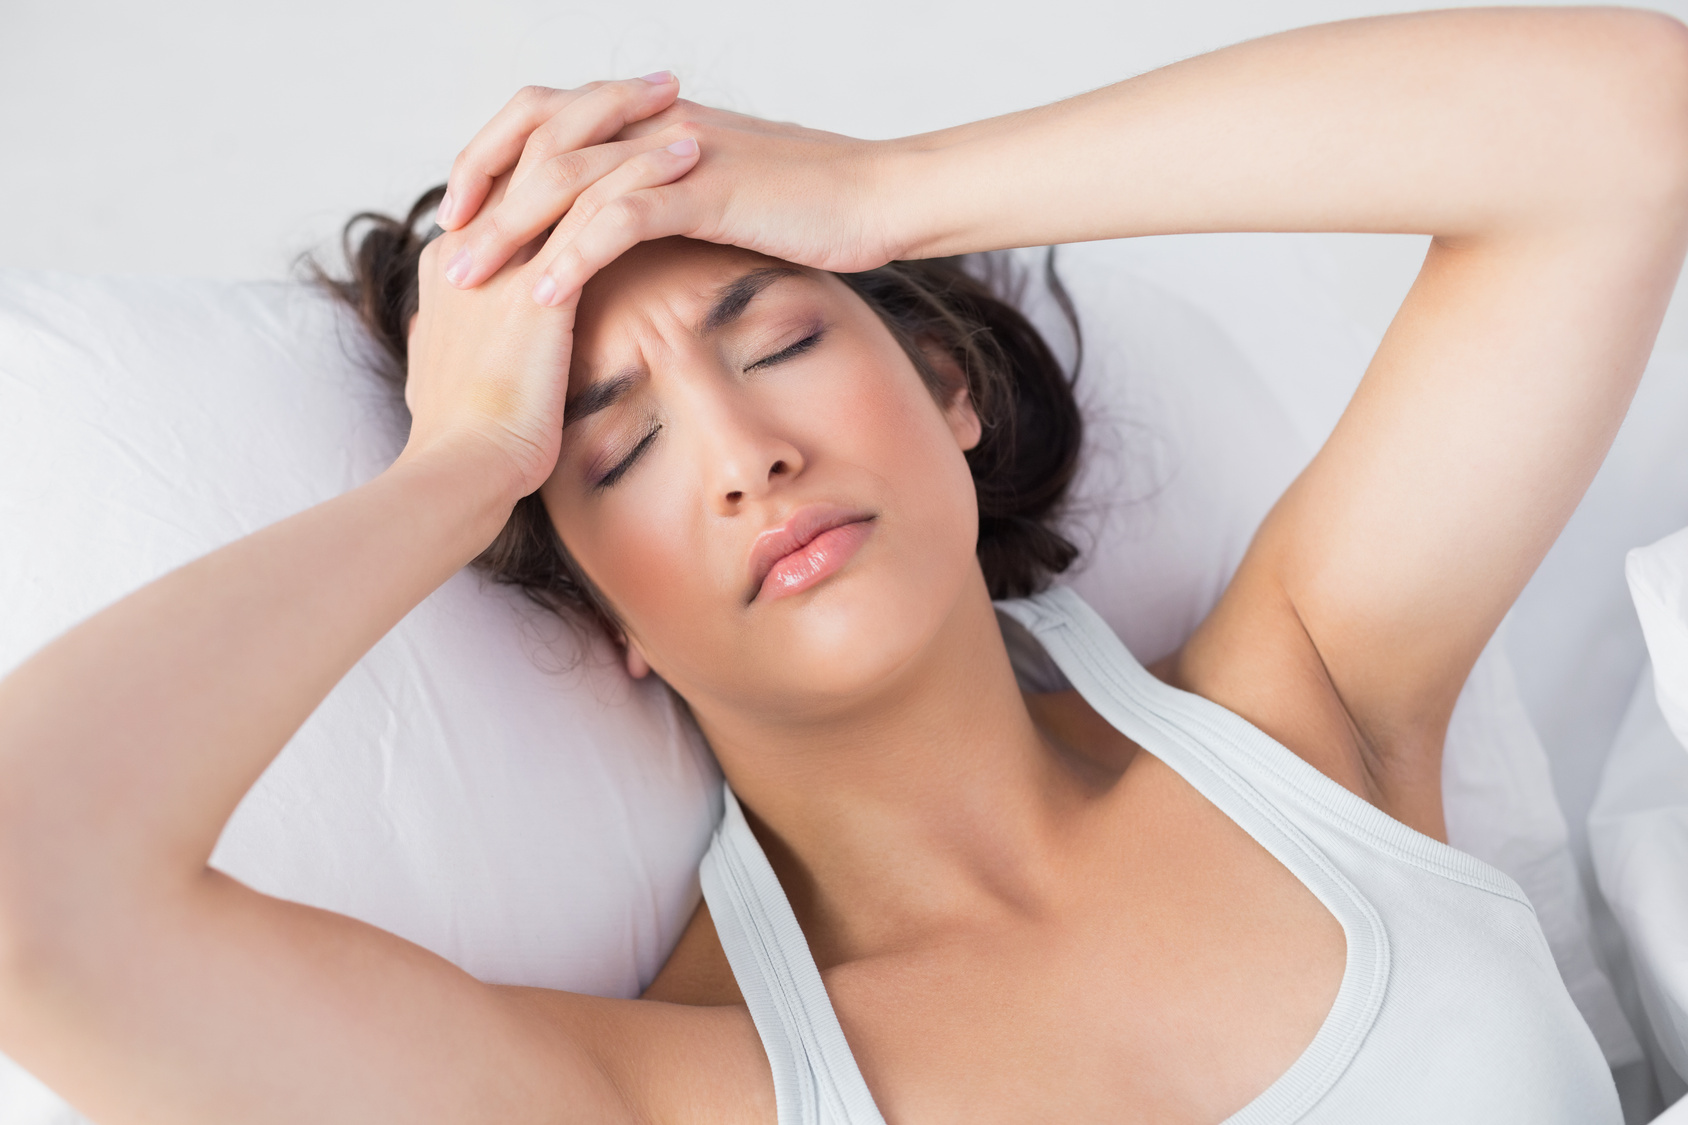 High angle view of a sleepy young woman suffering from headache with eyes closed in bed at home